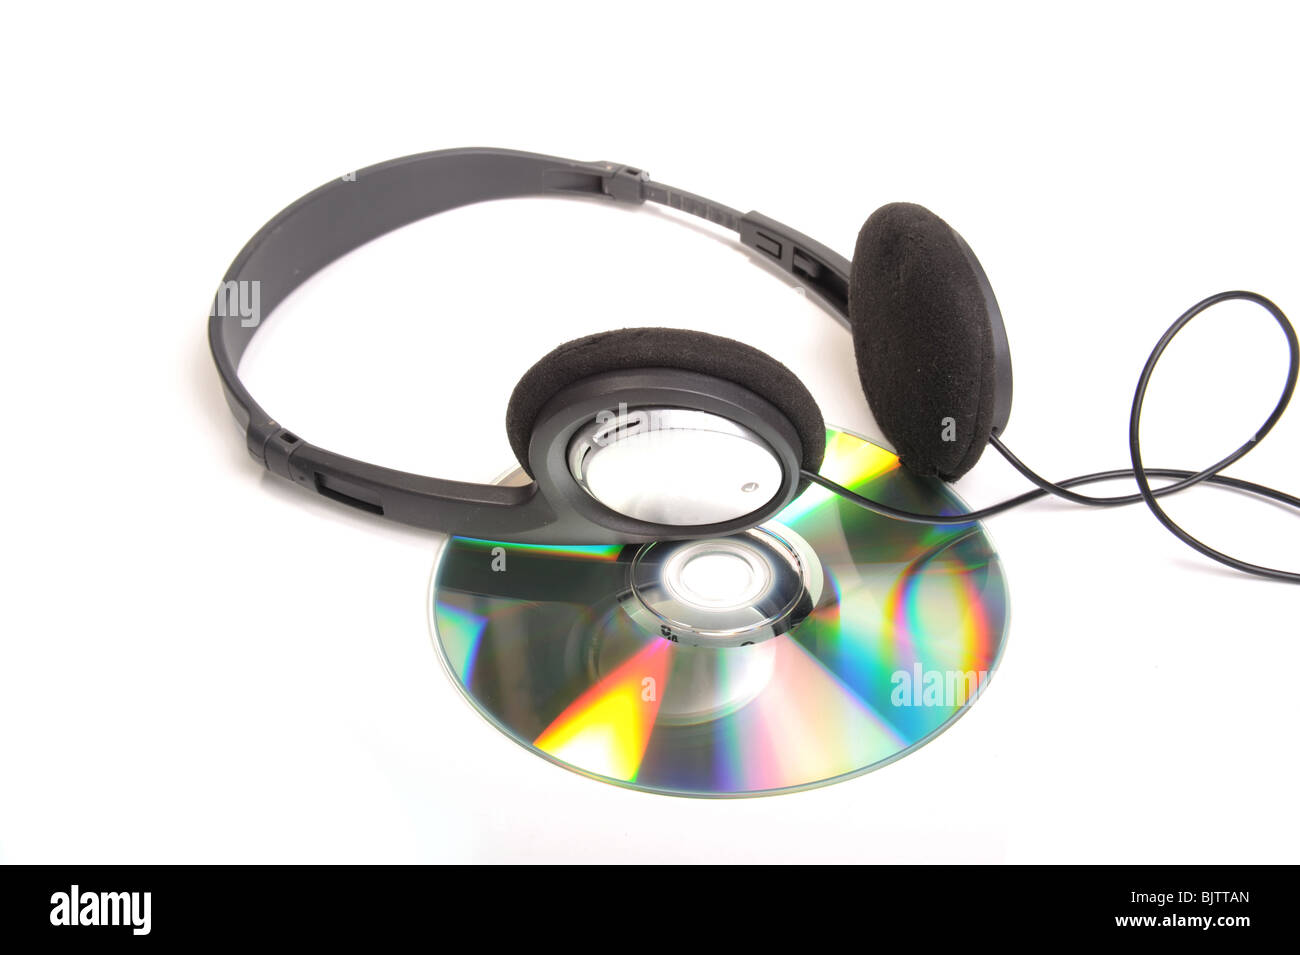 Head phones and compact disc photographed in studio against a whote background - Stock Image